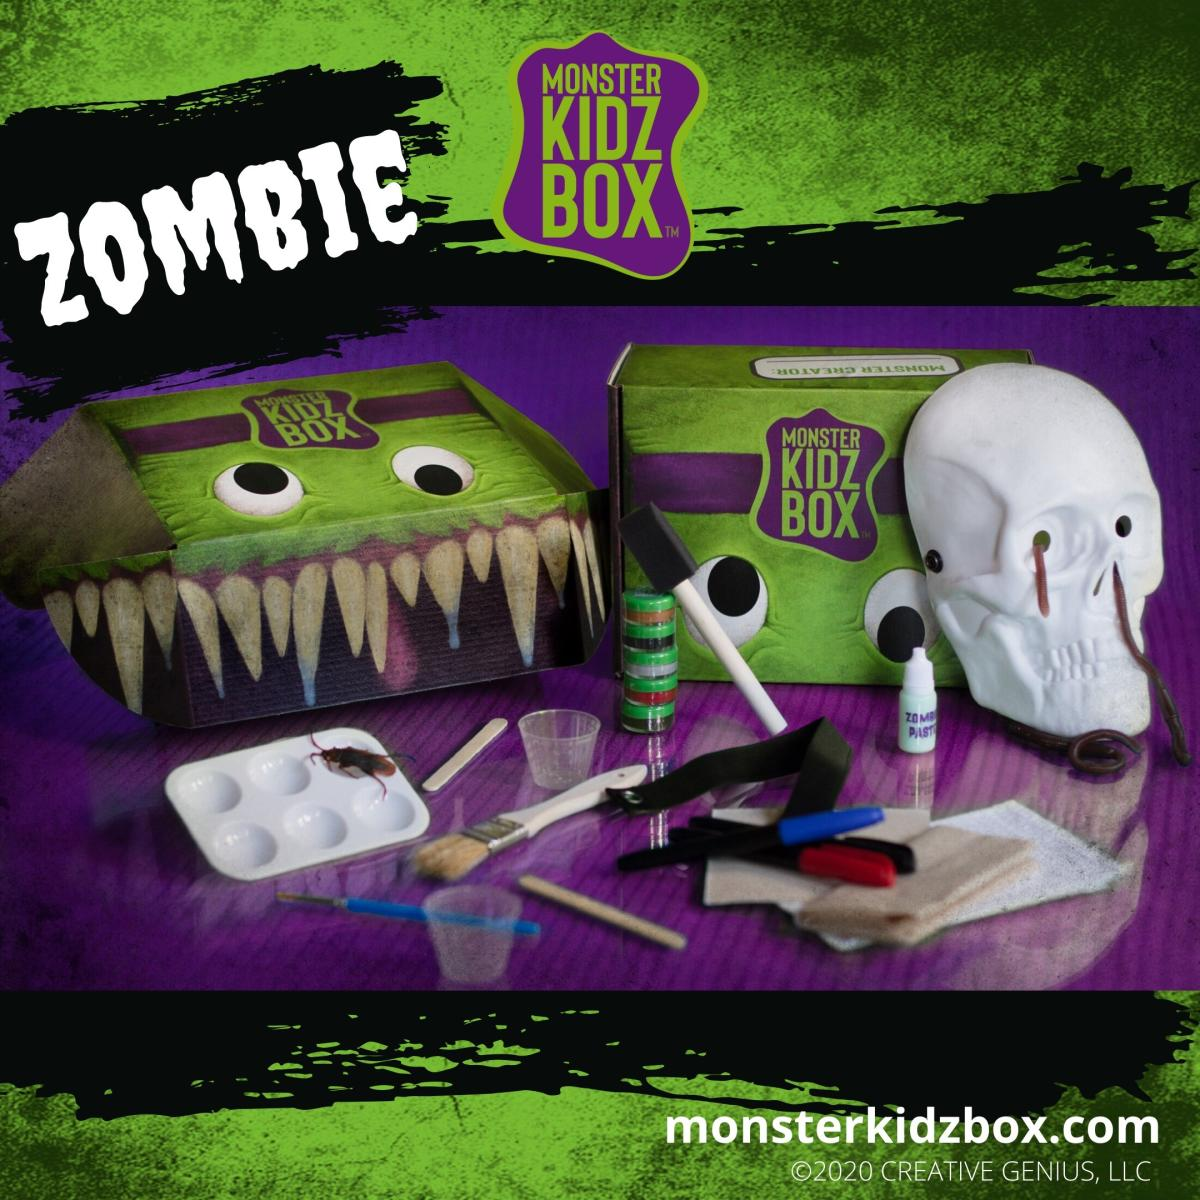 Monster Kidz Box